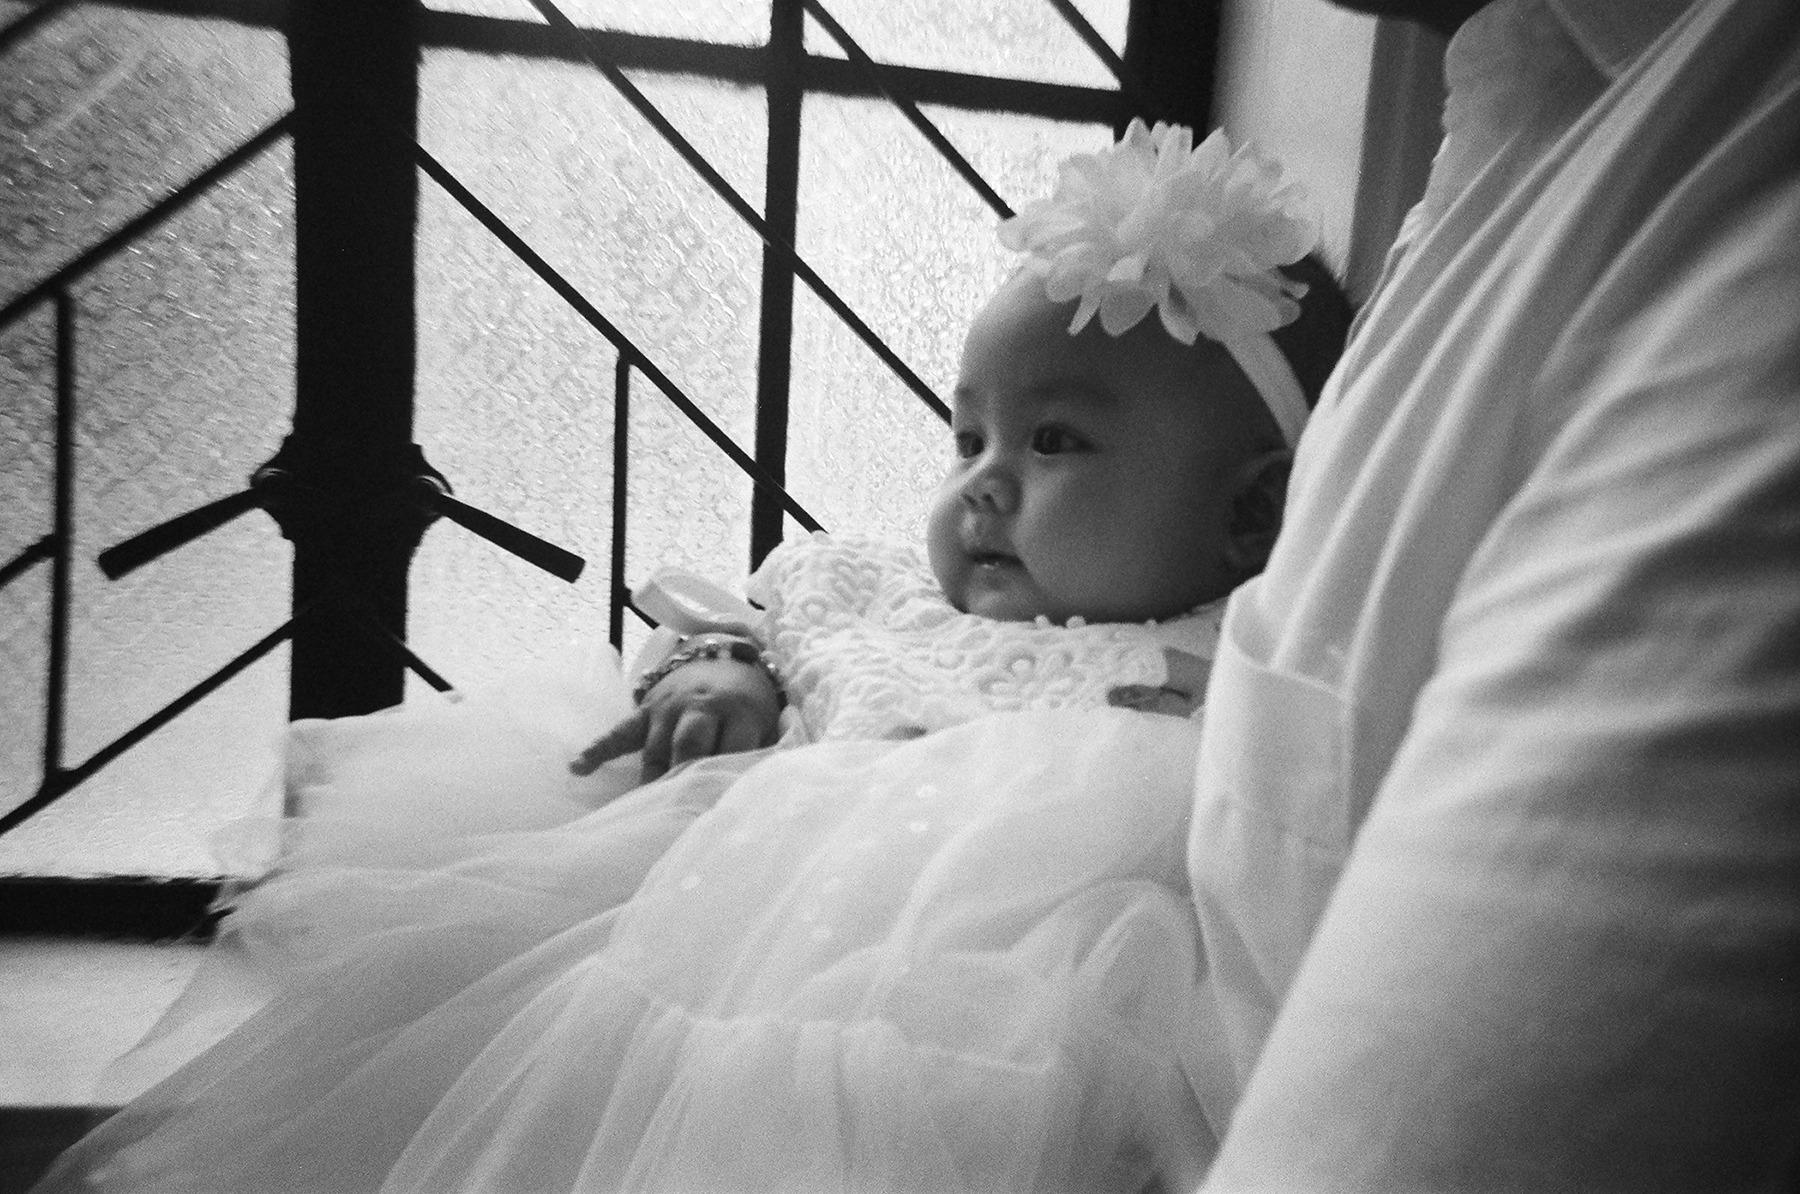 Francesca Eloise, daughter of Francis Perez on her baptism - Kentmere 400 + HARMAN REUSABLE CAMERA